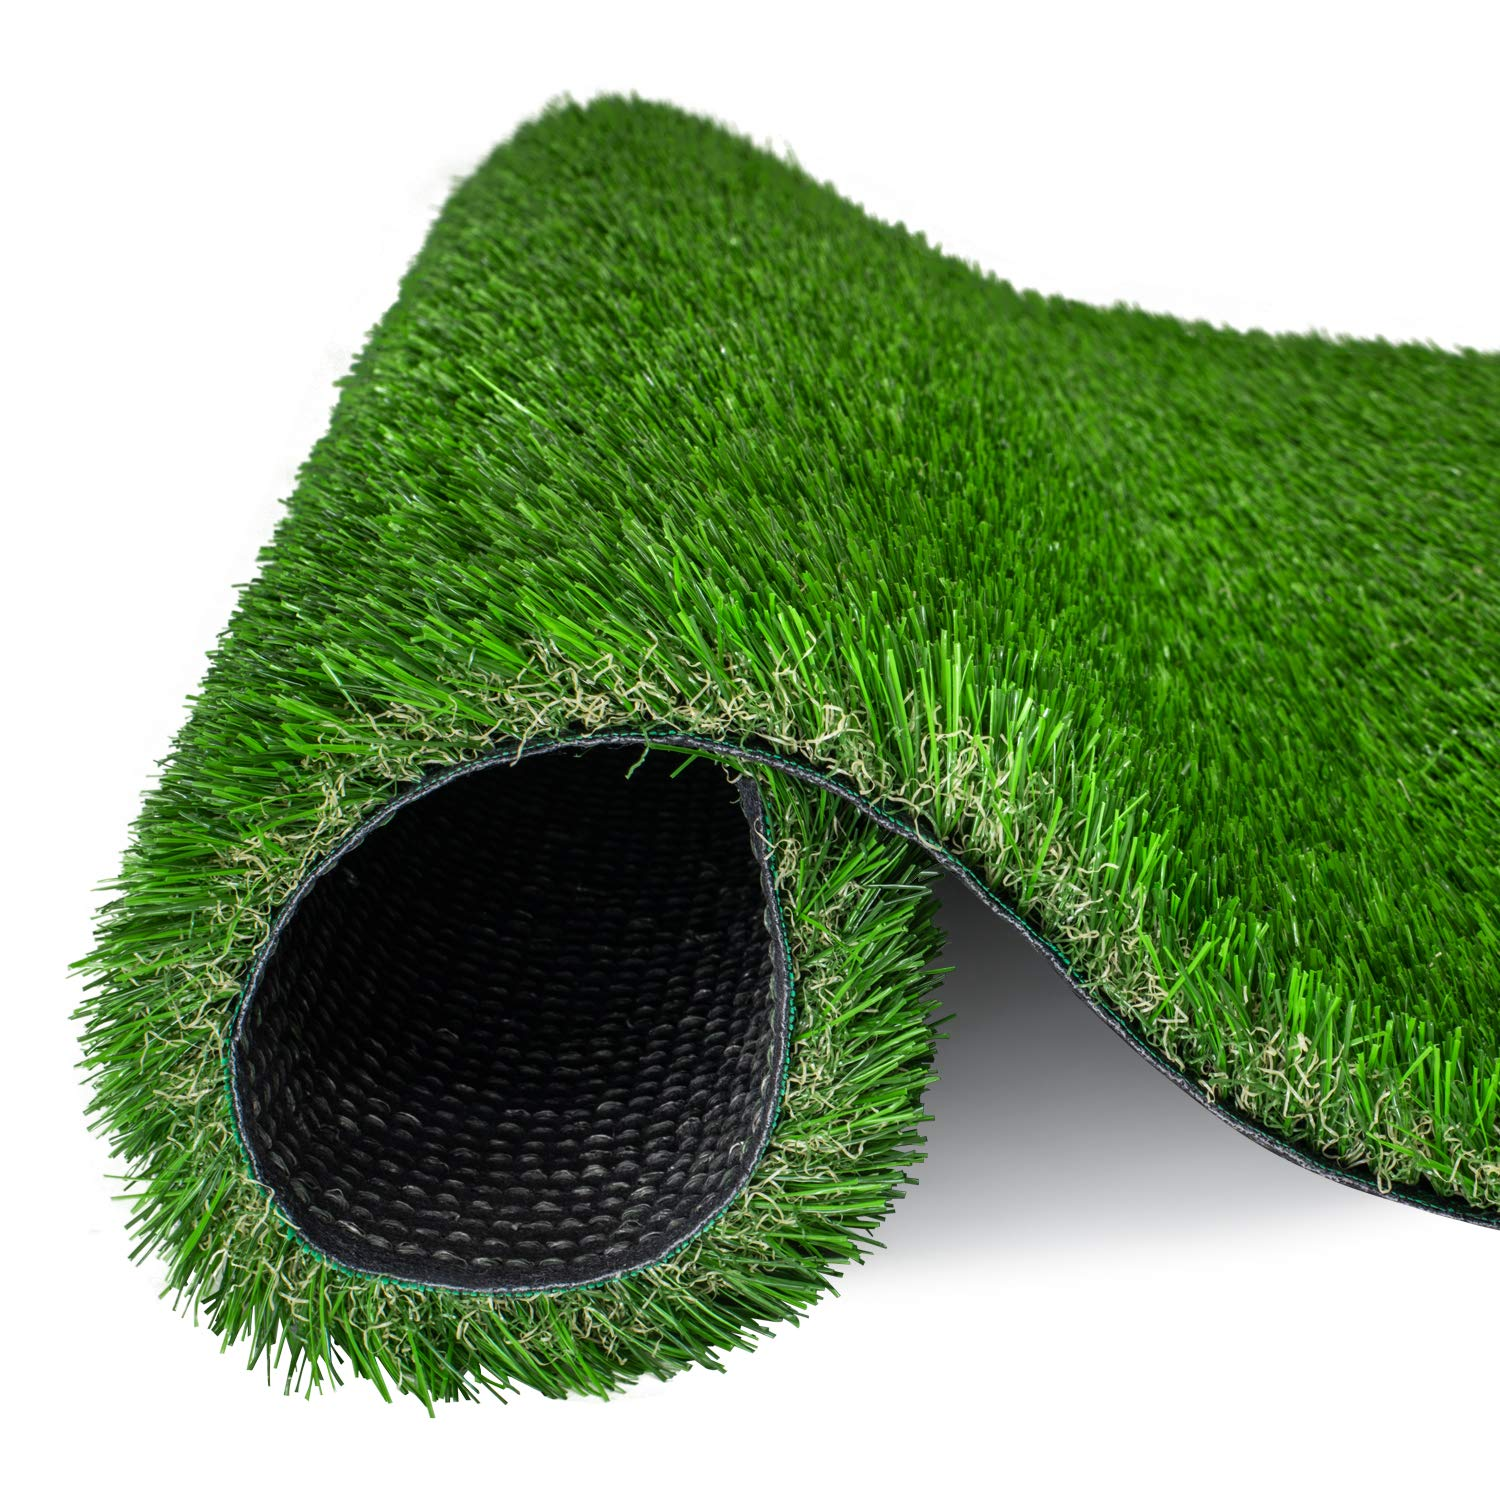 Amasky Artificial Grass Turf 4 Tone Synthetic Artificial Turf Rug For Dogs Indoor Outdoor Garden Lawn Patio Balcony Synthetic Turf Mat For Pets 17 In X 24 In 2 84 Sq Ft